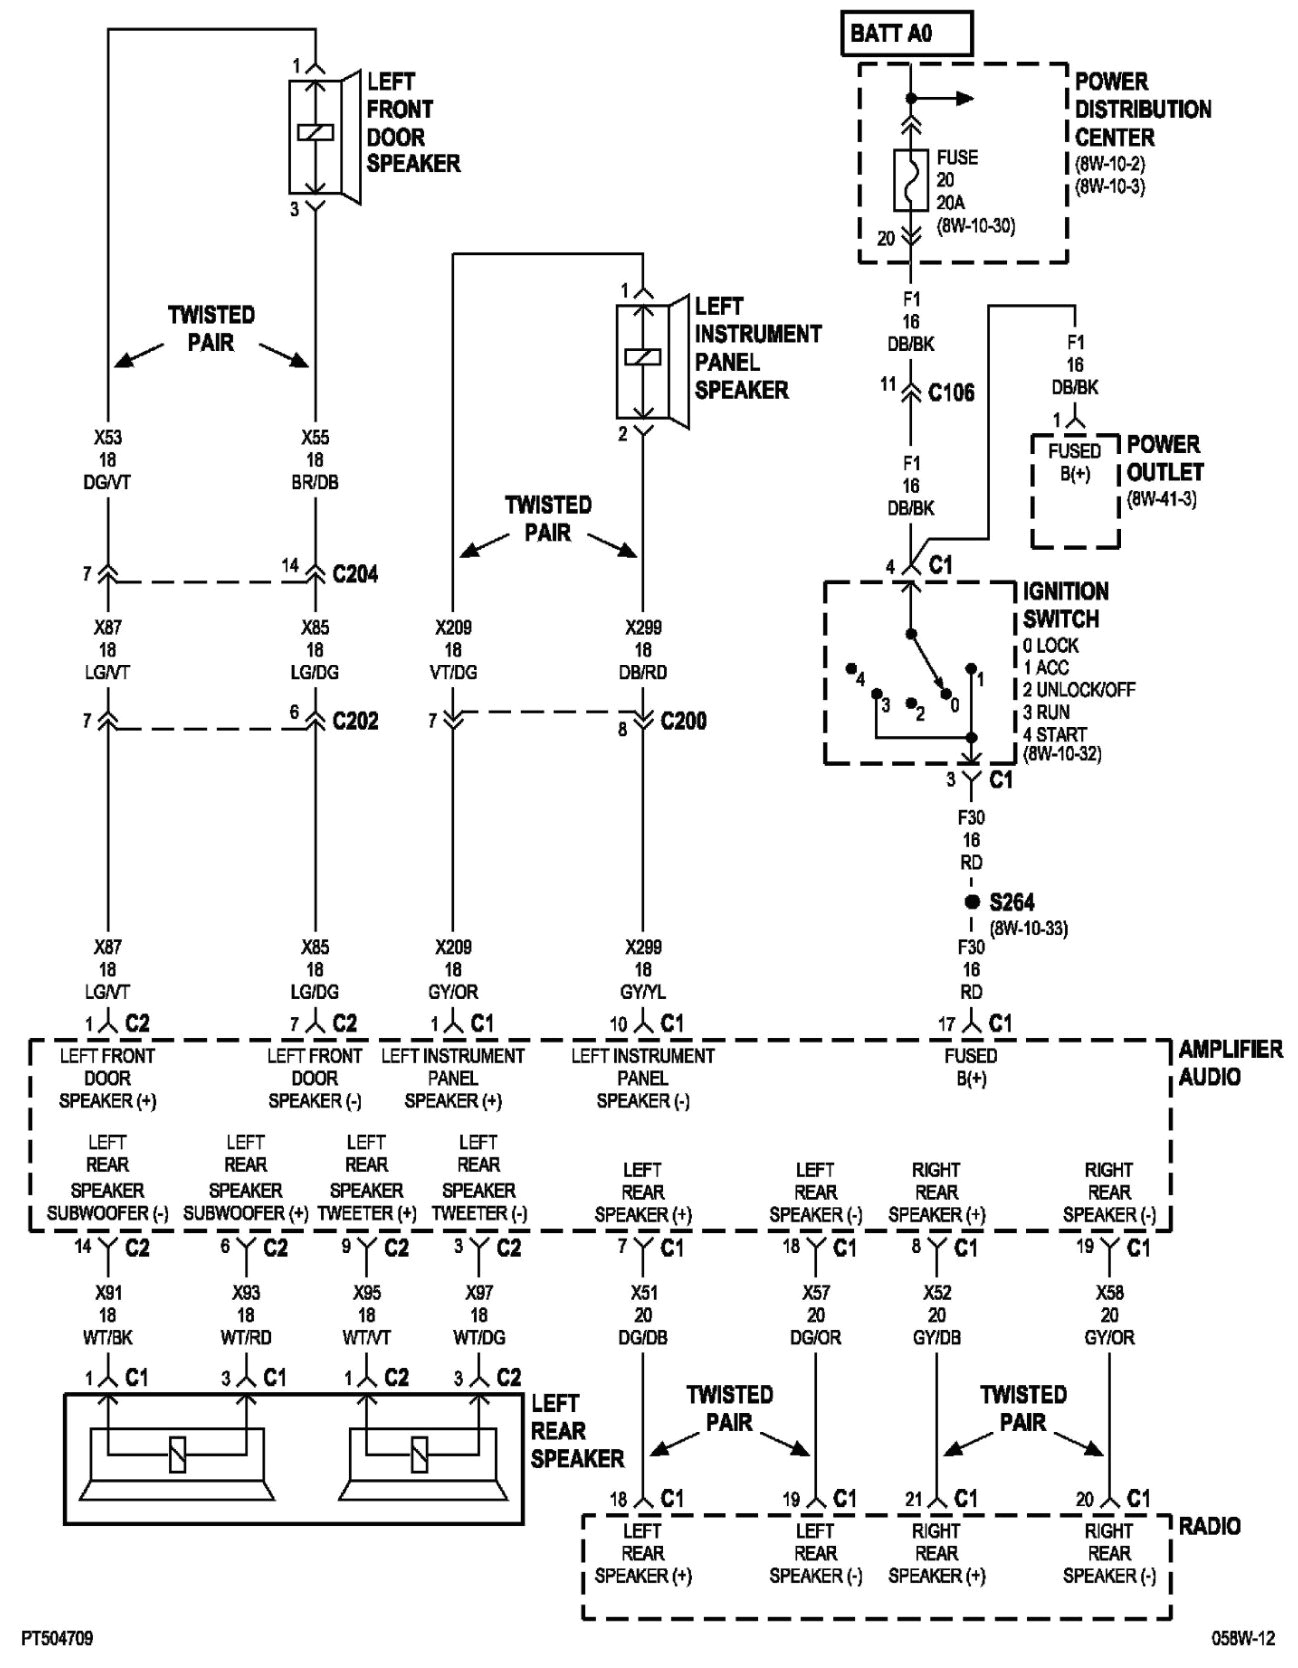 wiring diagram for pt s wiring diagram list 2002 pt cruiser electrical wiring diagram wiring diagram